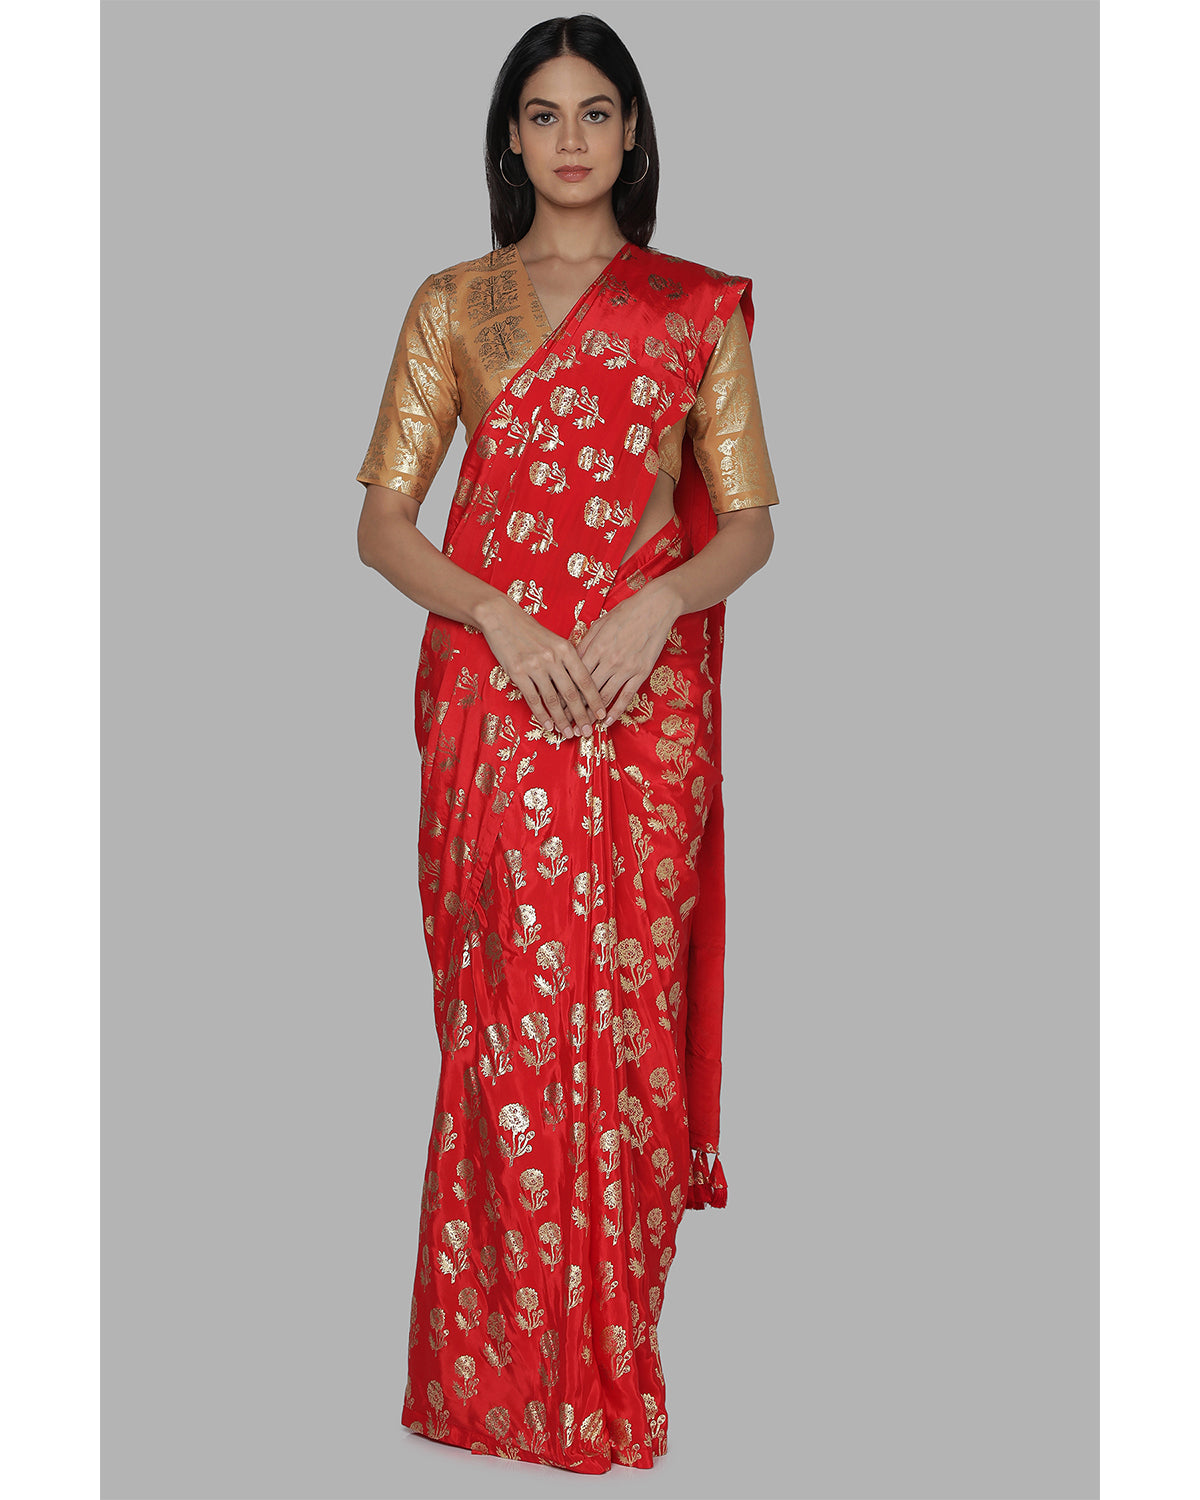 Red and Orange Printed Crepe Sari